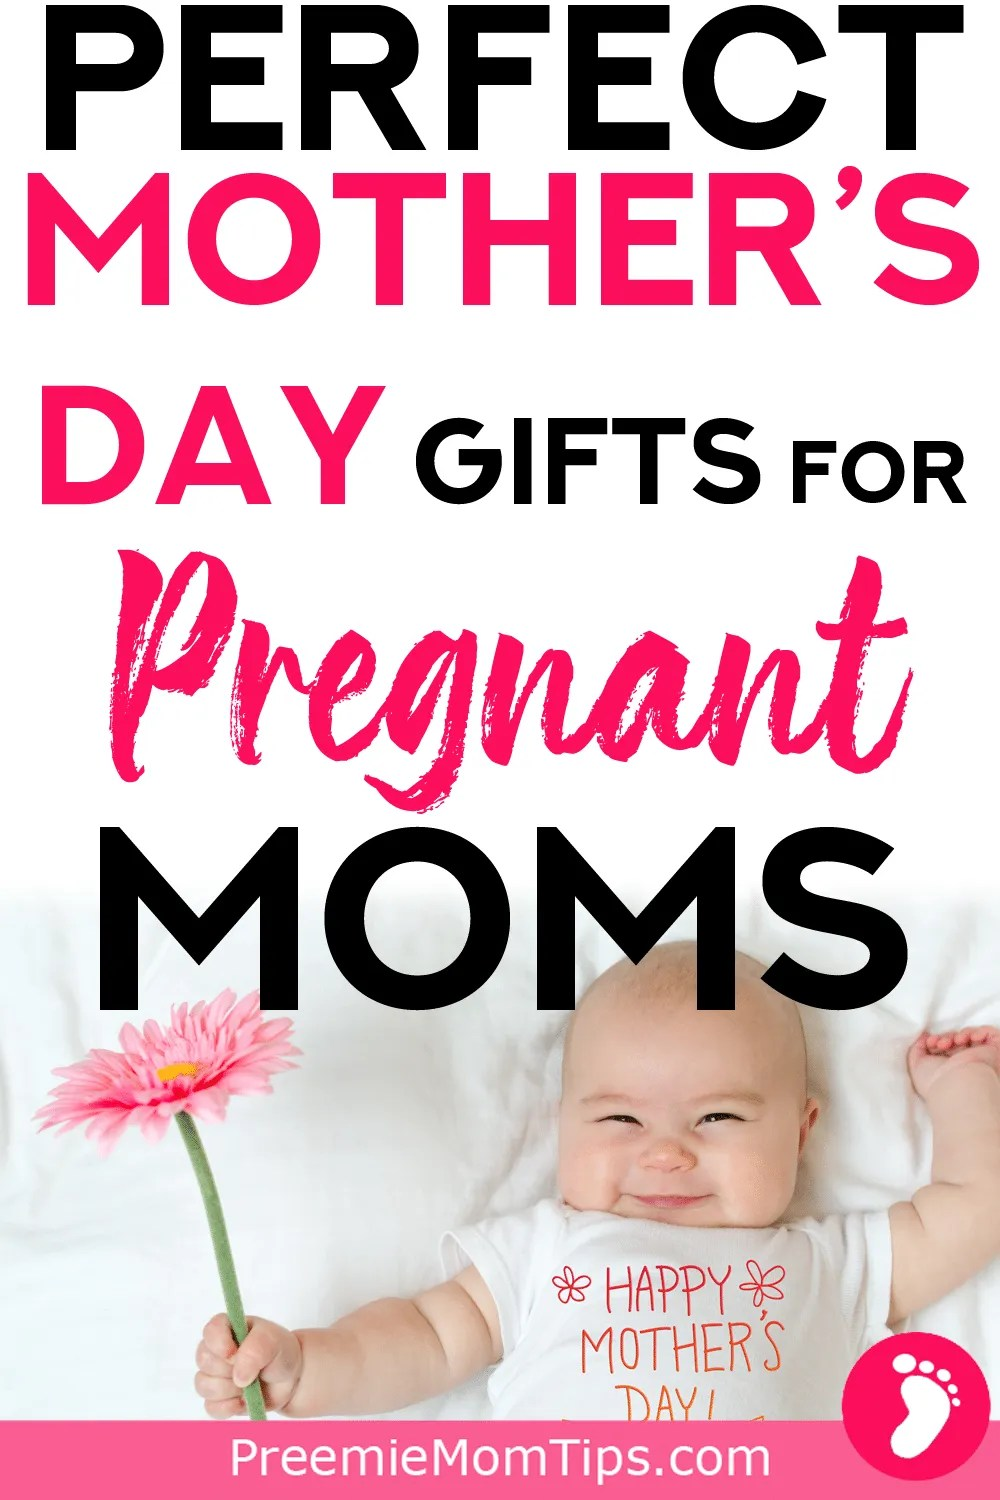 The ultimate list of mother's day presents for pregnant moms that they will definetly love and adore! Check out this perfect mom guift guide!